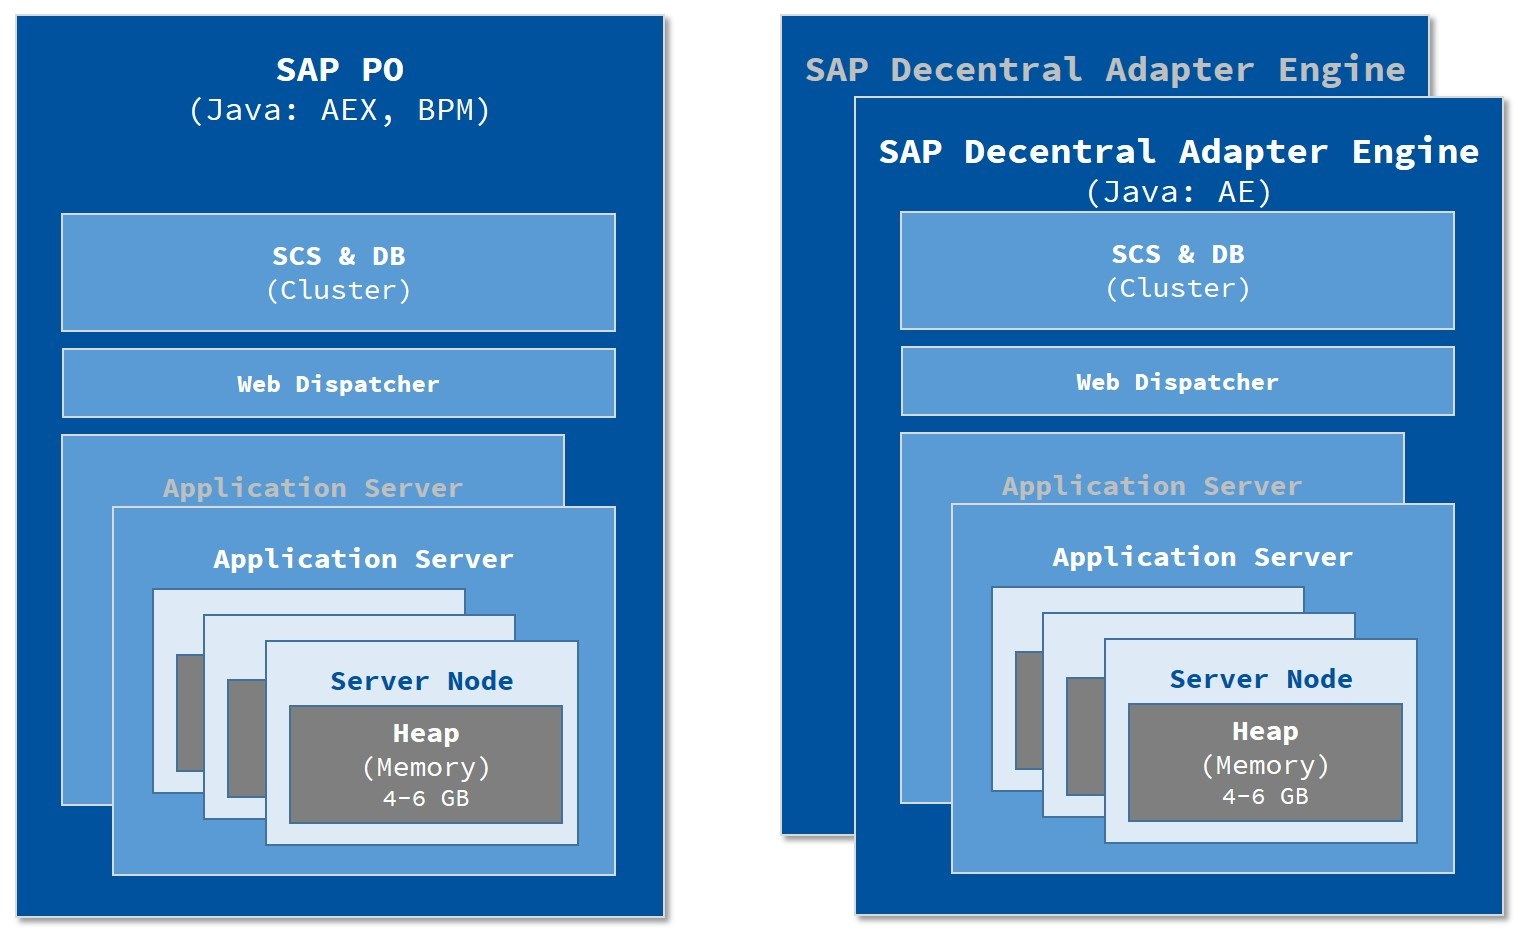 sap process orchestration 7.5 installation guide